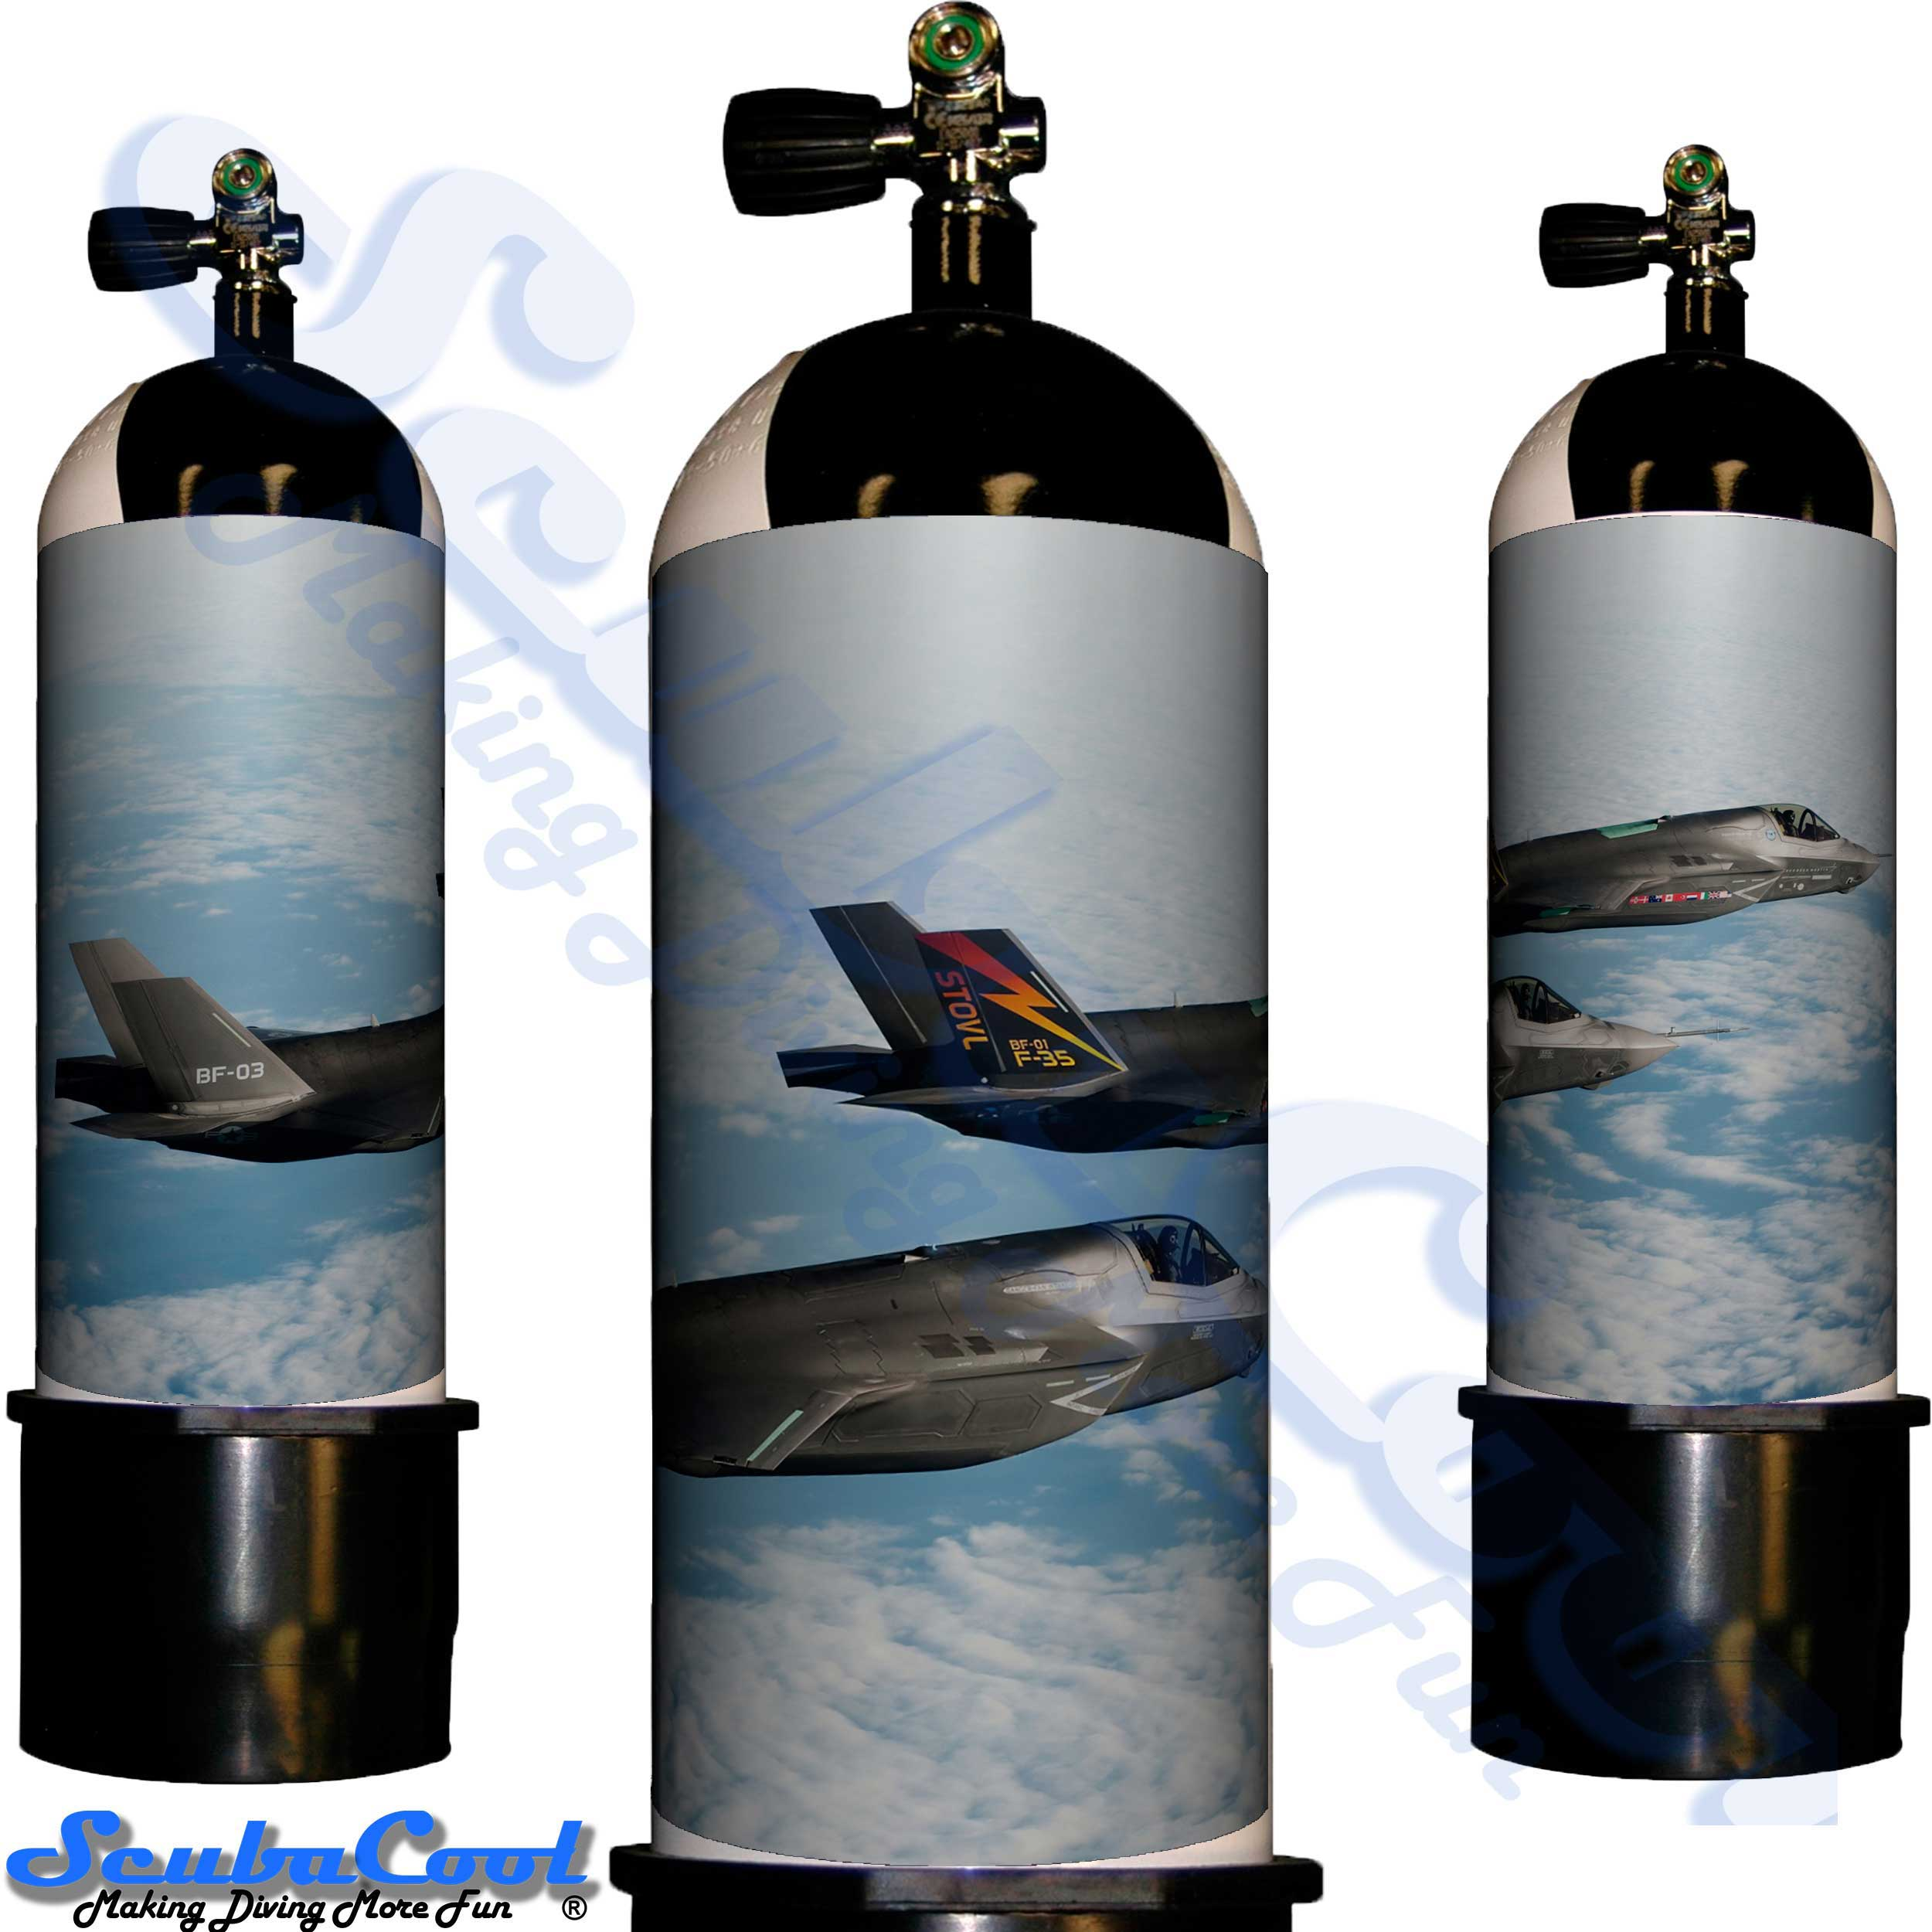 2223 Scubacool Scuba Dive Gas Cylinder Tank Cover NOT neoprene